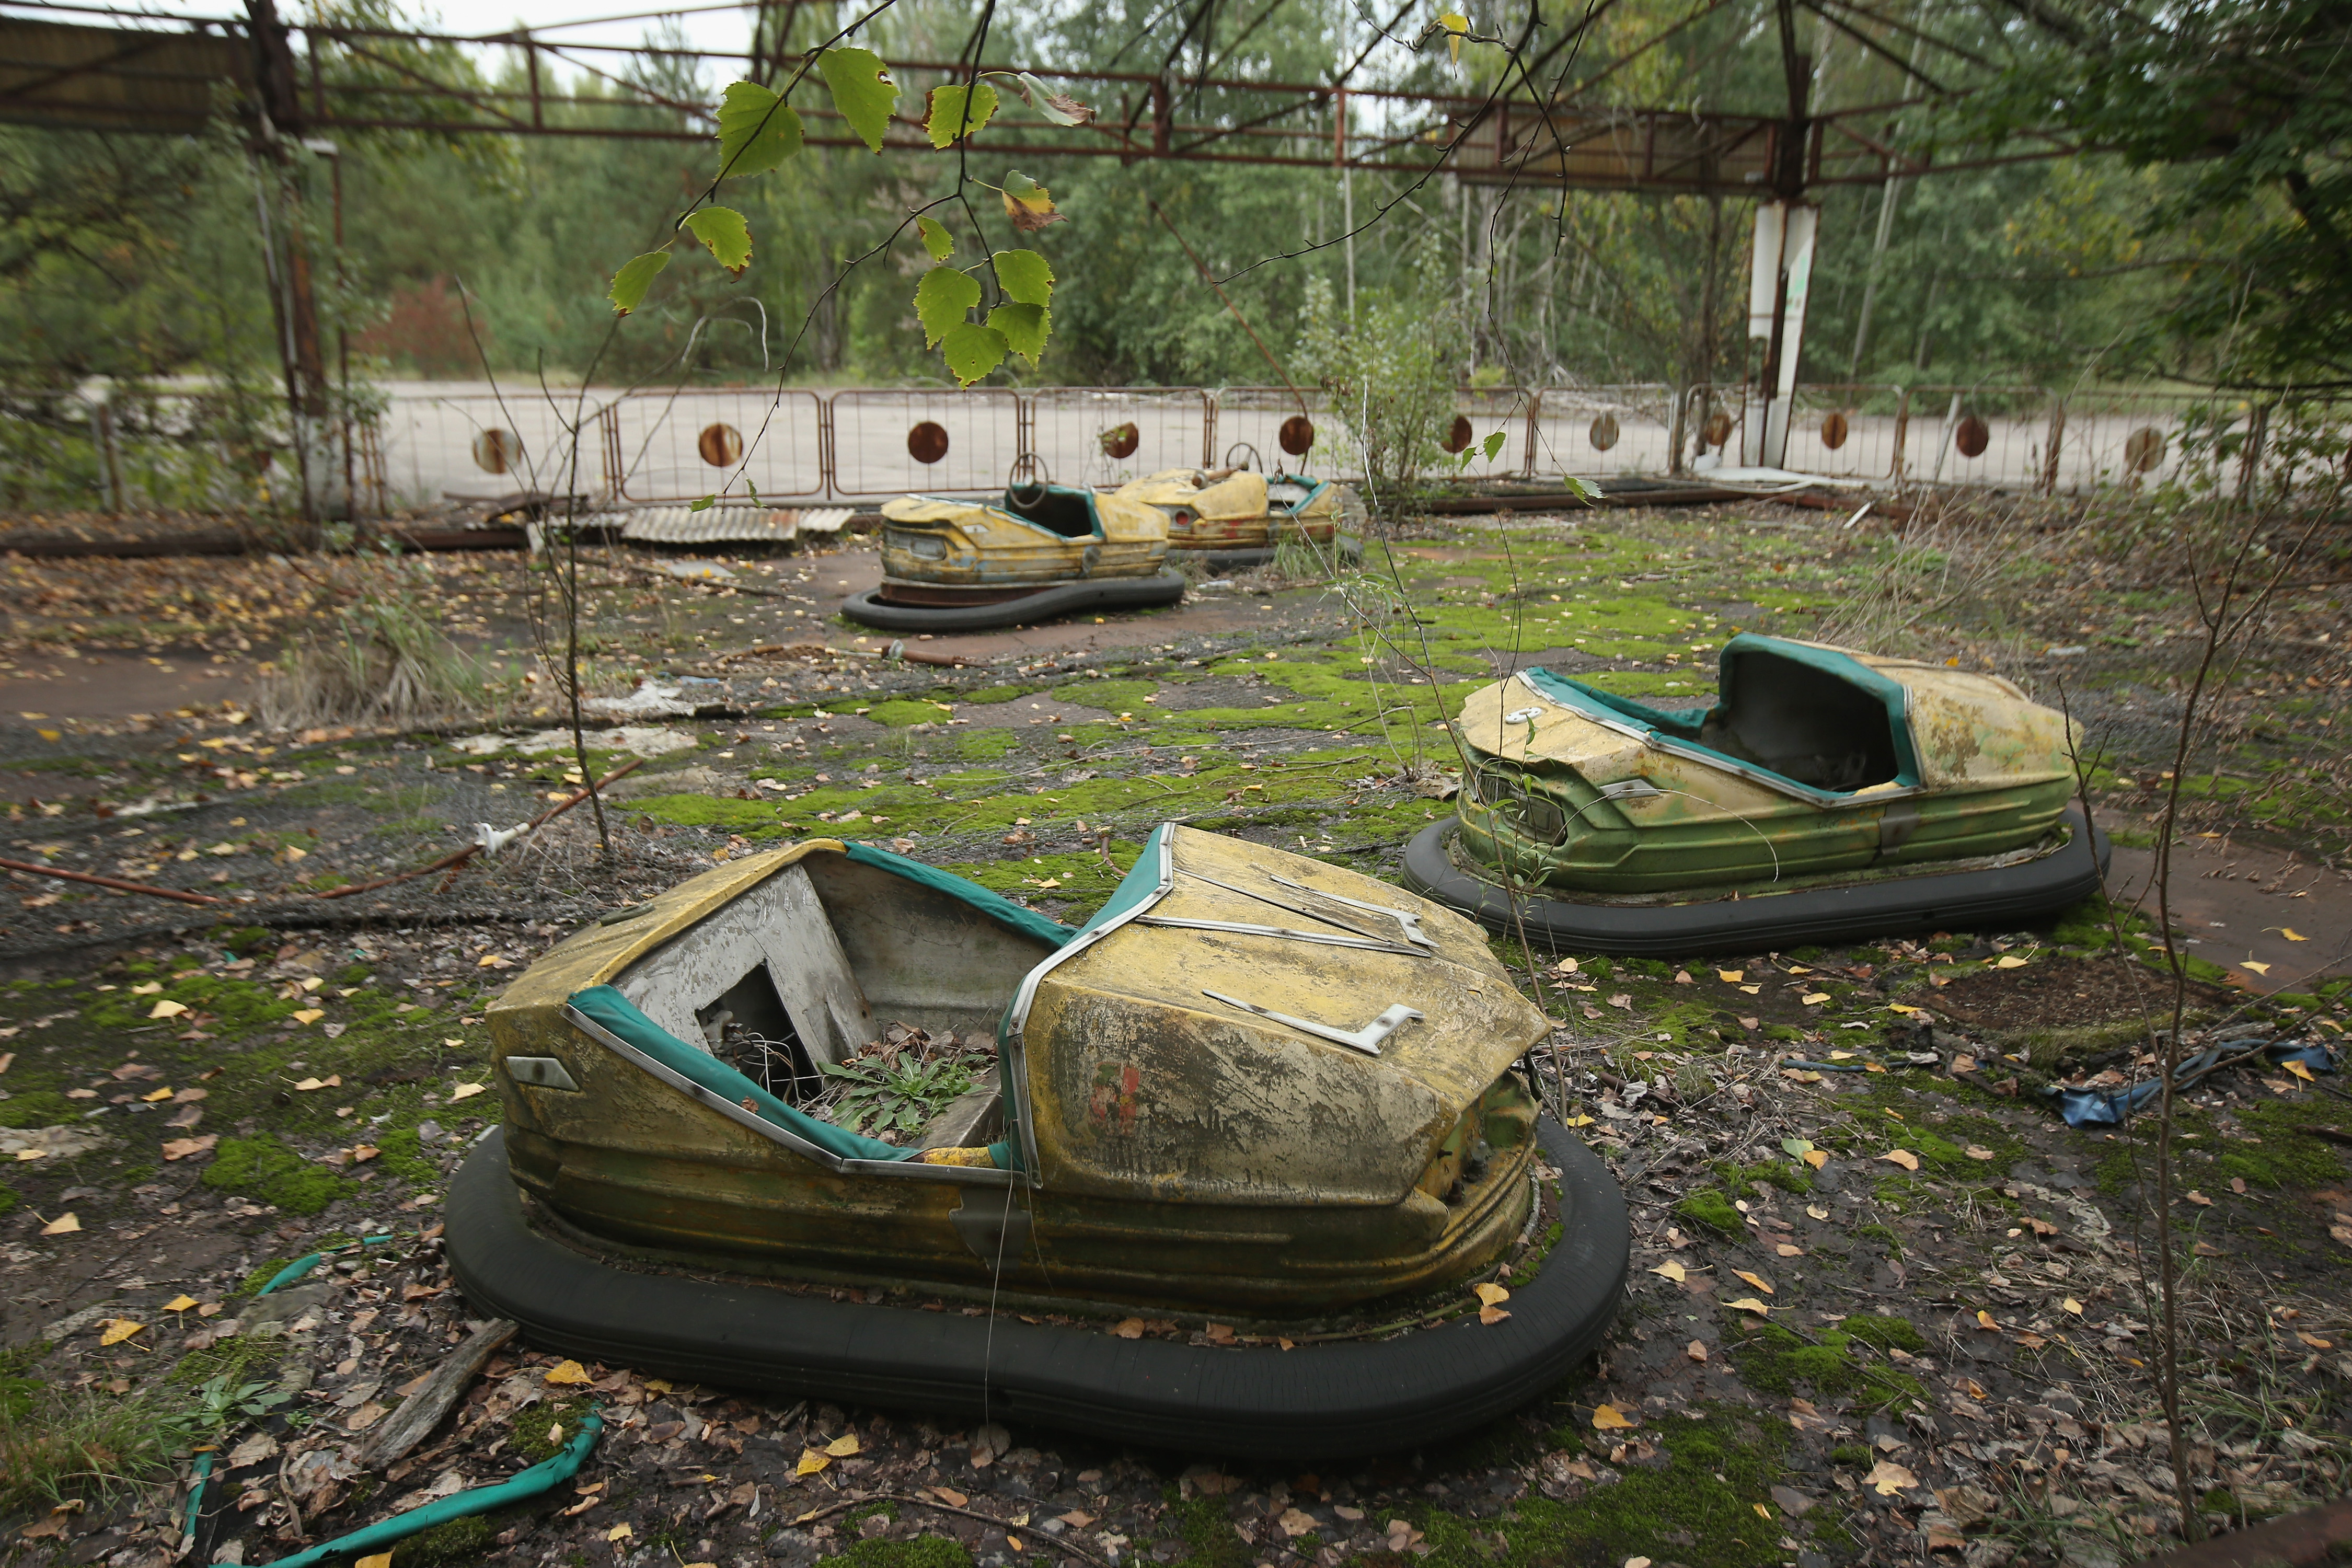 The Chernobyl Cover-Up: How Officials Botched Evacuating an Irradiated City